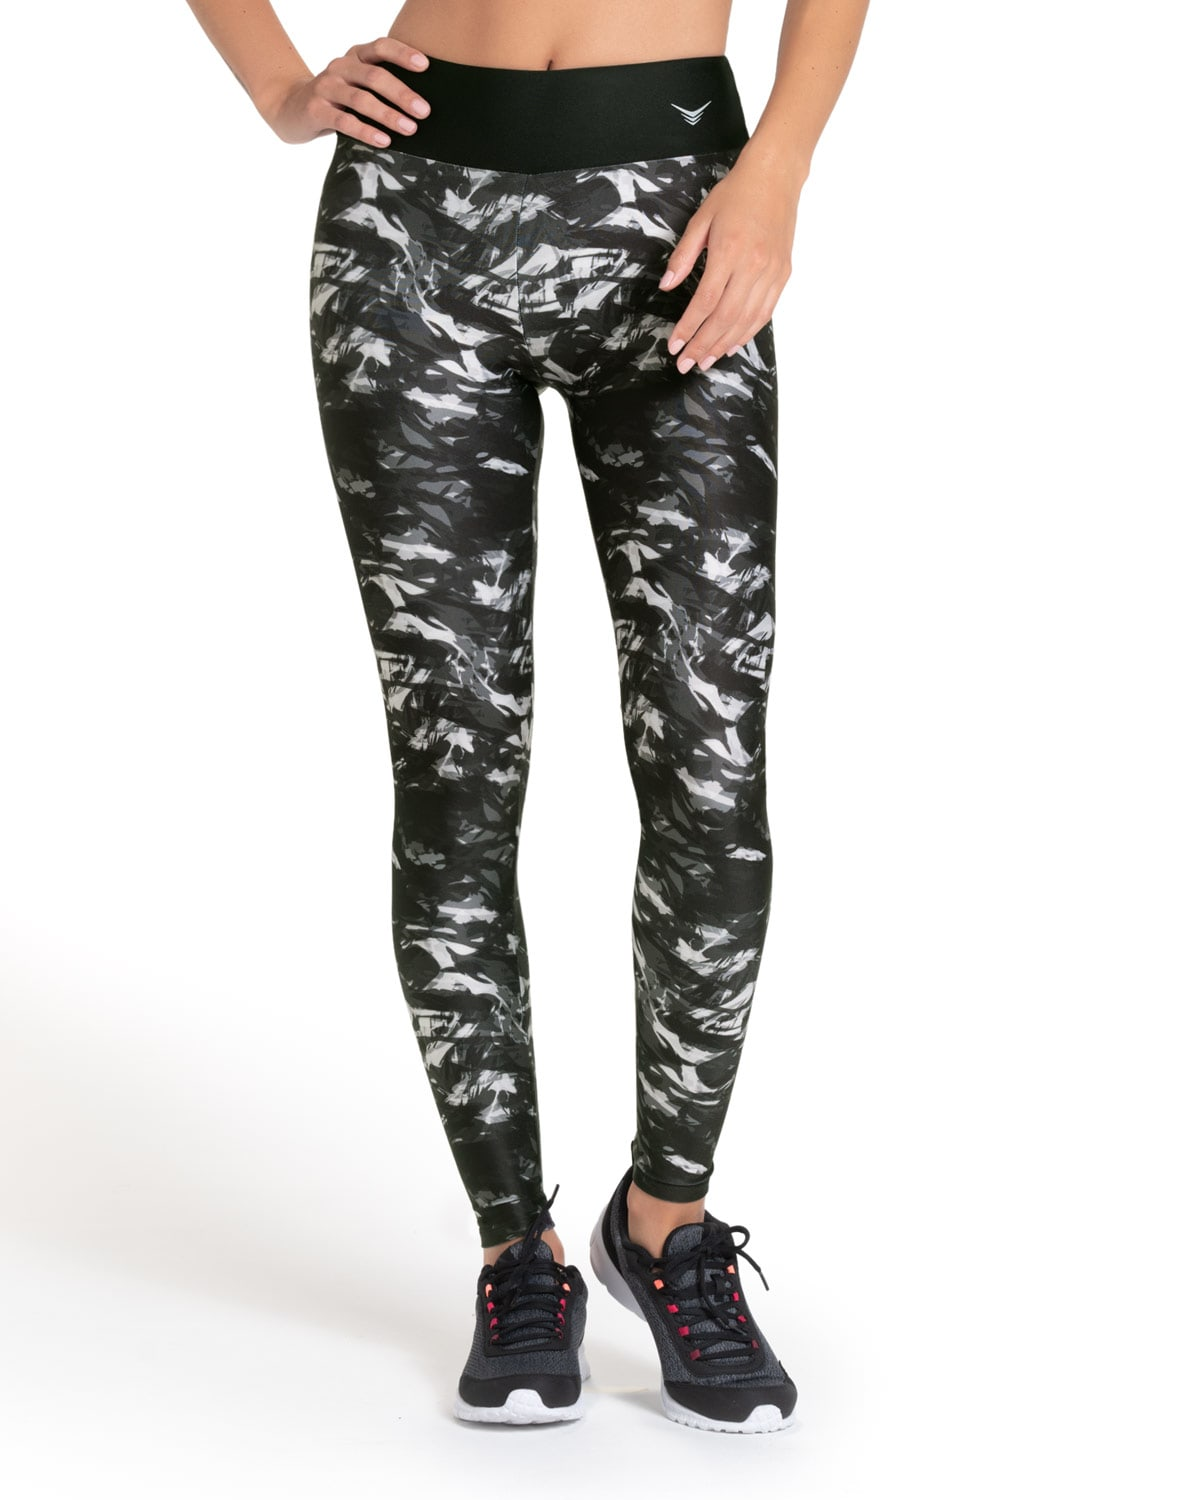 ActiveLife Mid-Rise Graphic Long Legging